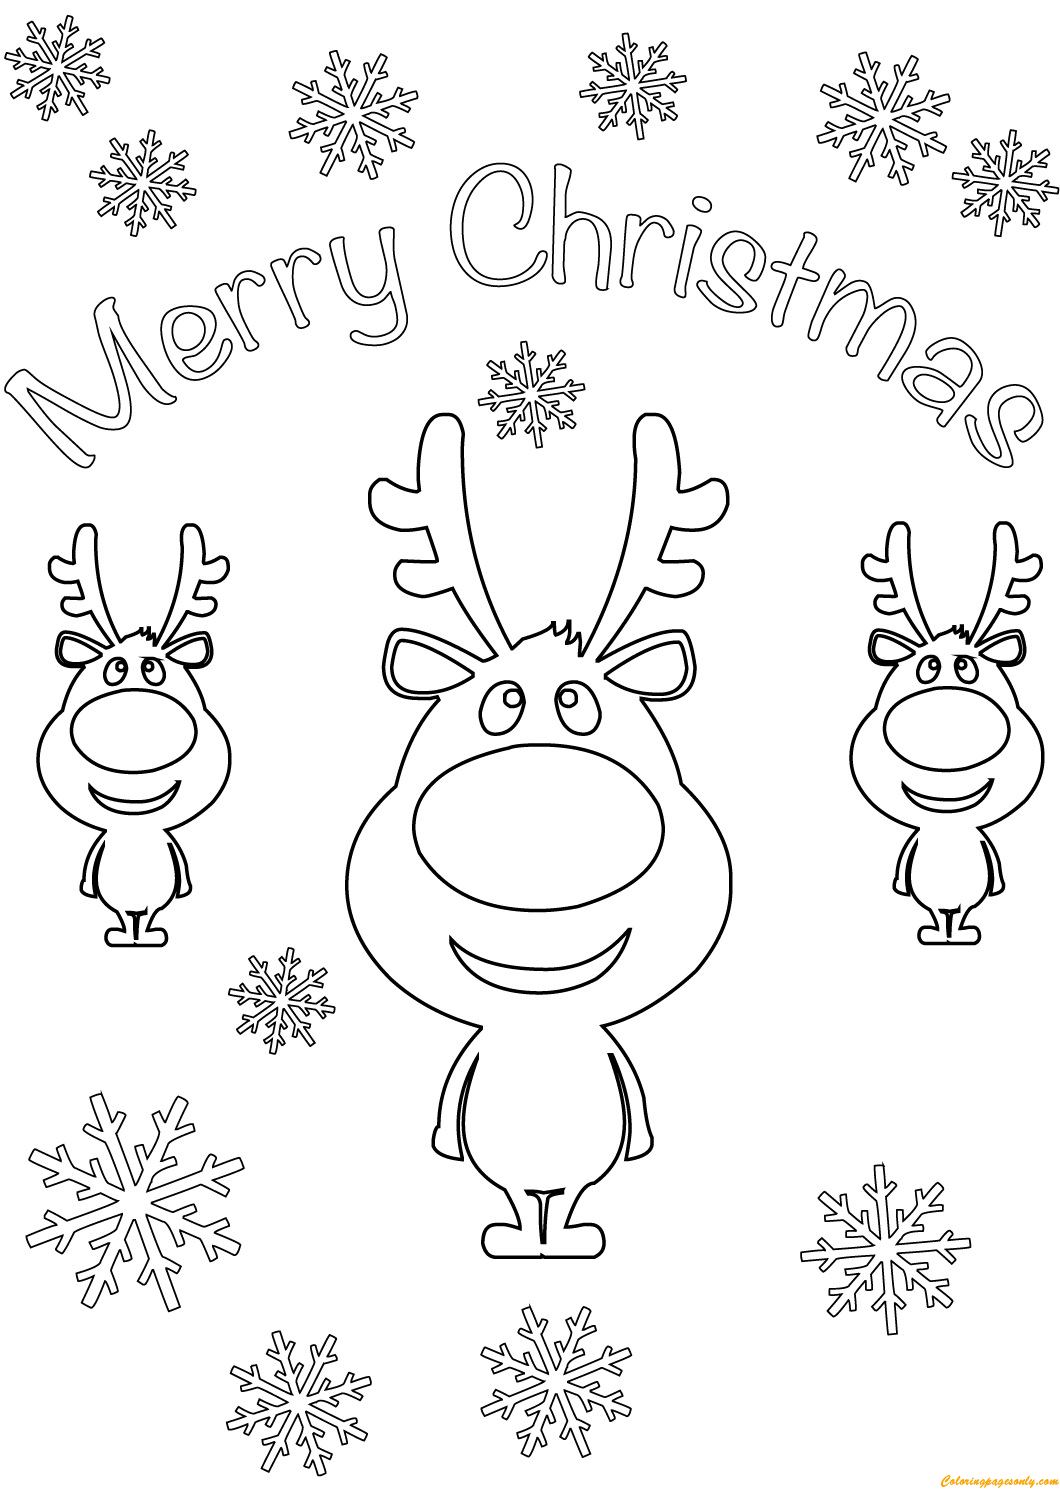 Reindeer Merry Christmas Cards Coloring Page - Free ...